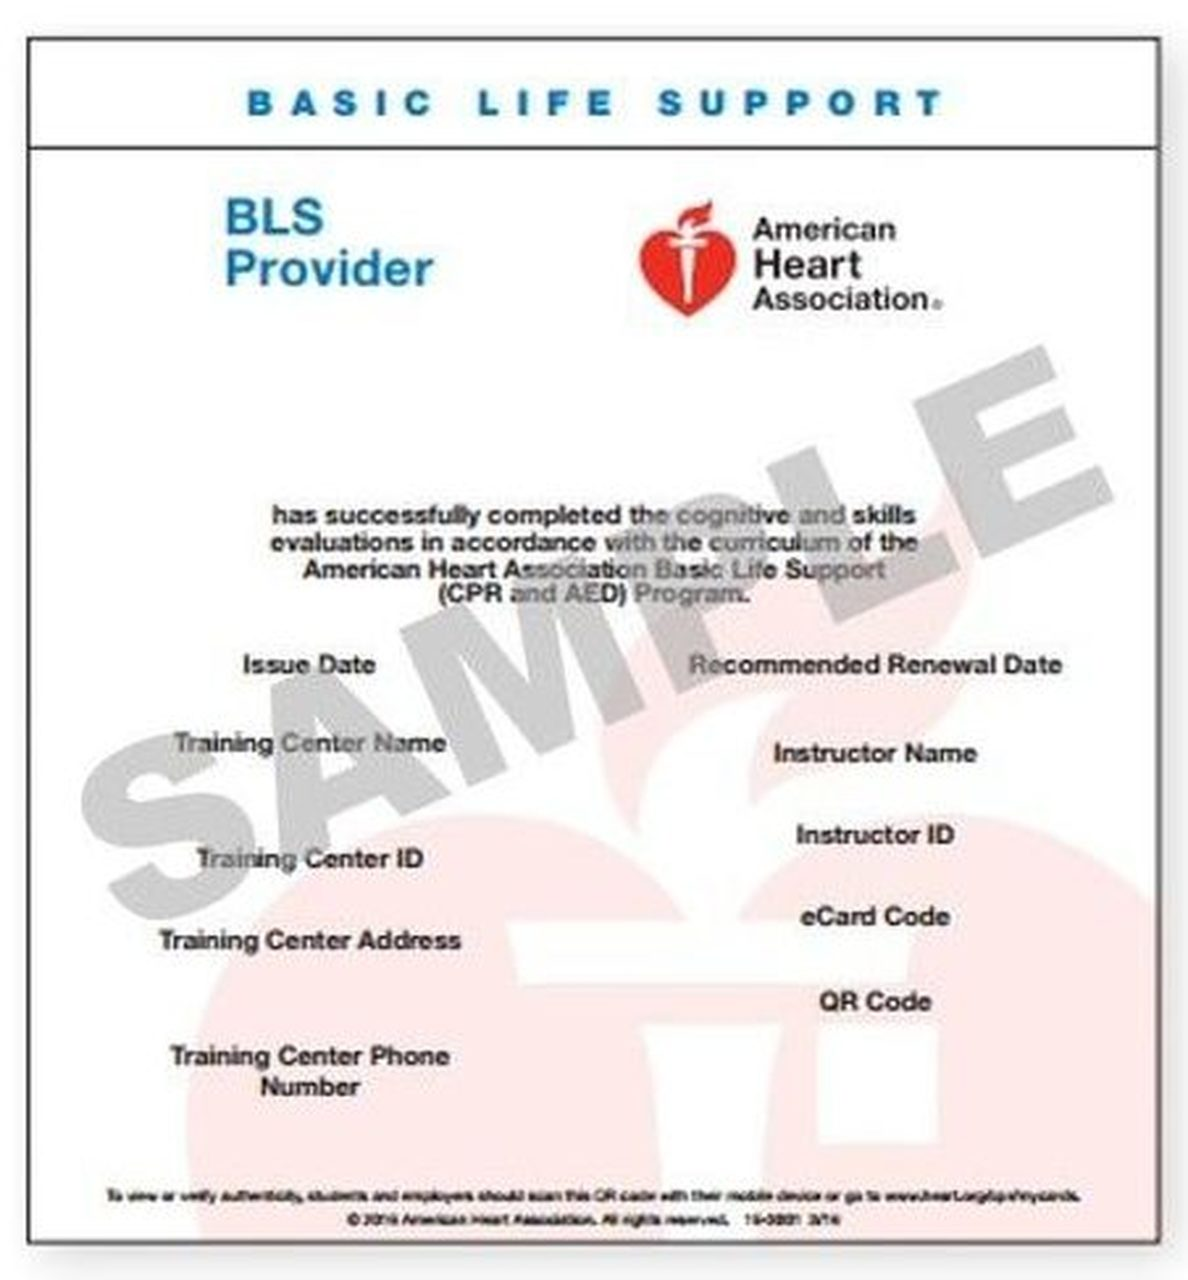 bls aha ecard ecards provider cpr aed certification aid heartcode acls heart